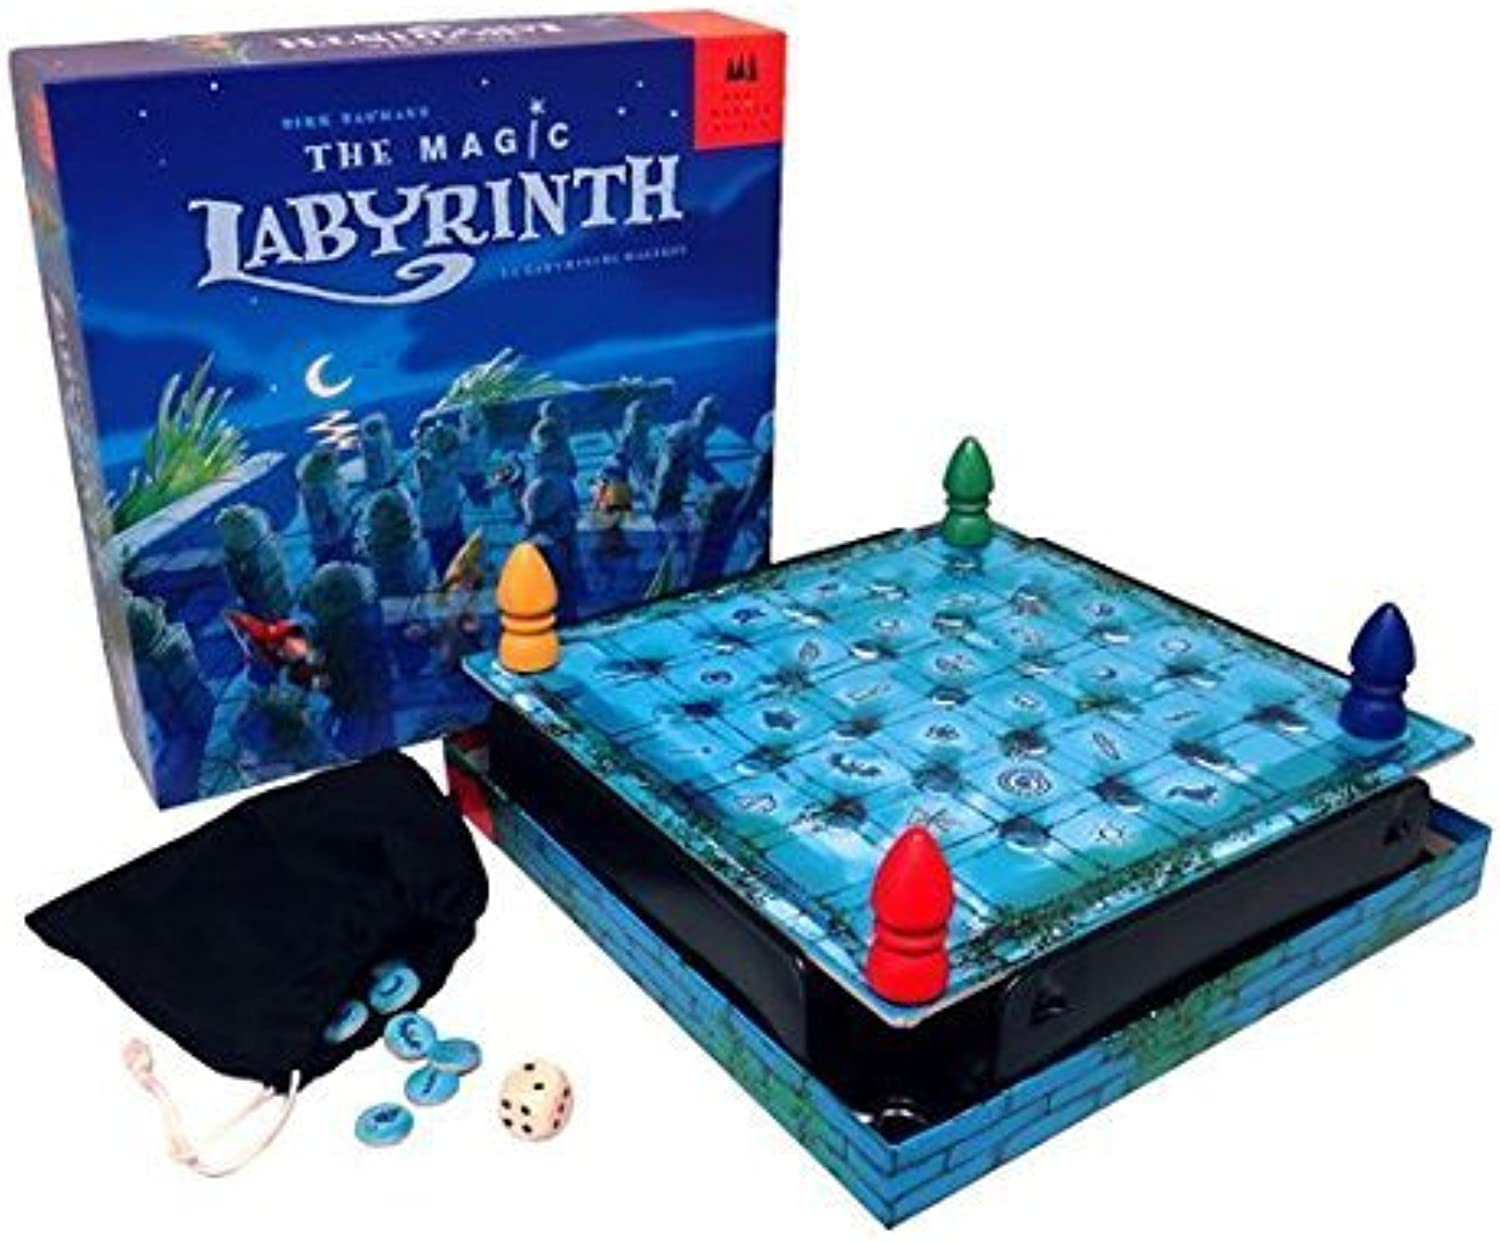 Magic Labyrinth by Lion Rampant Imports Ltd